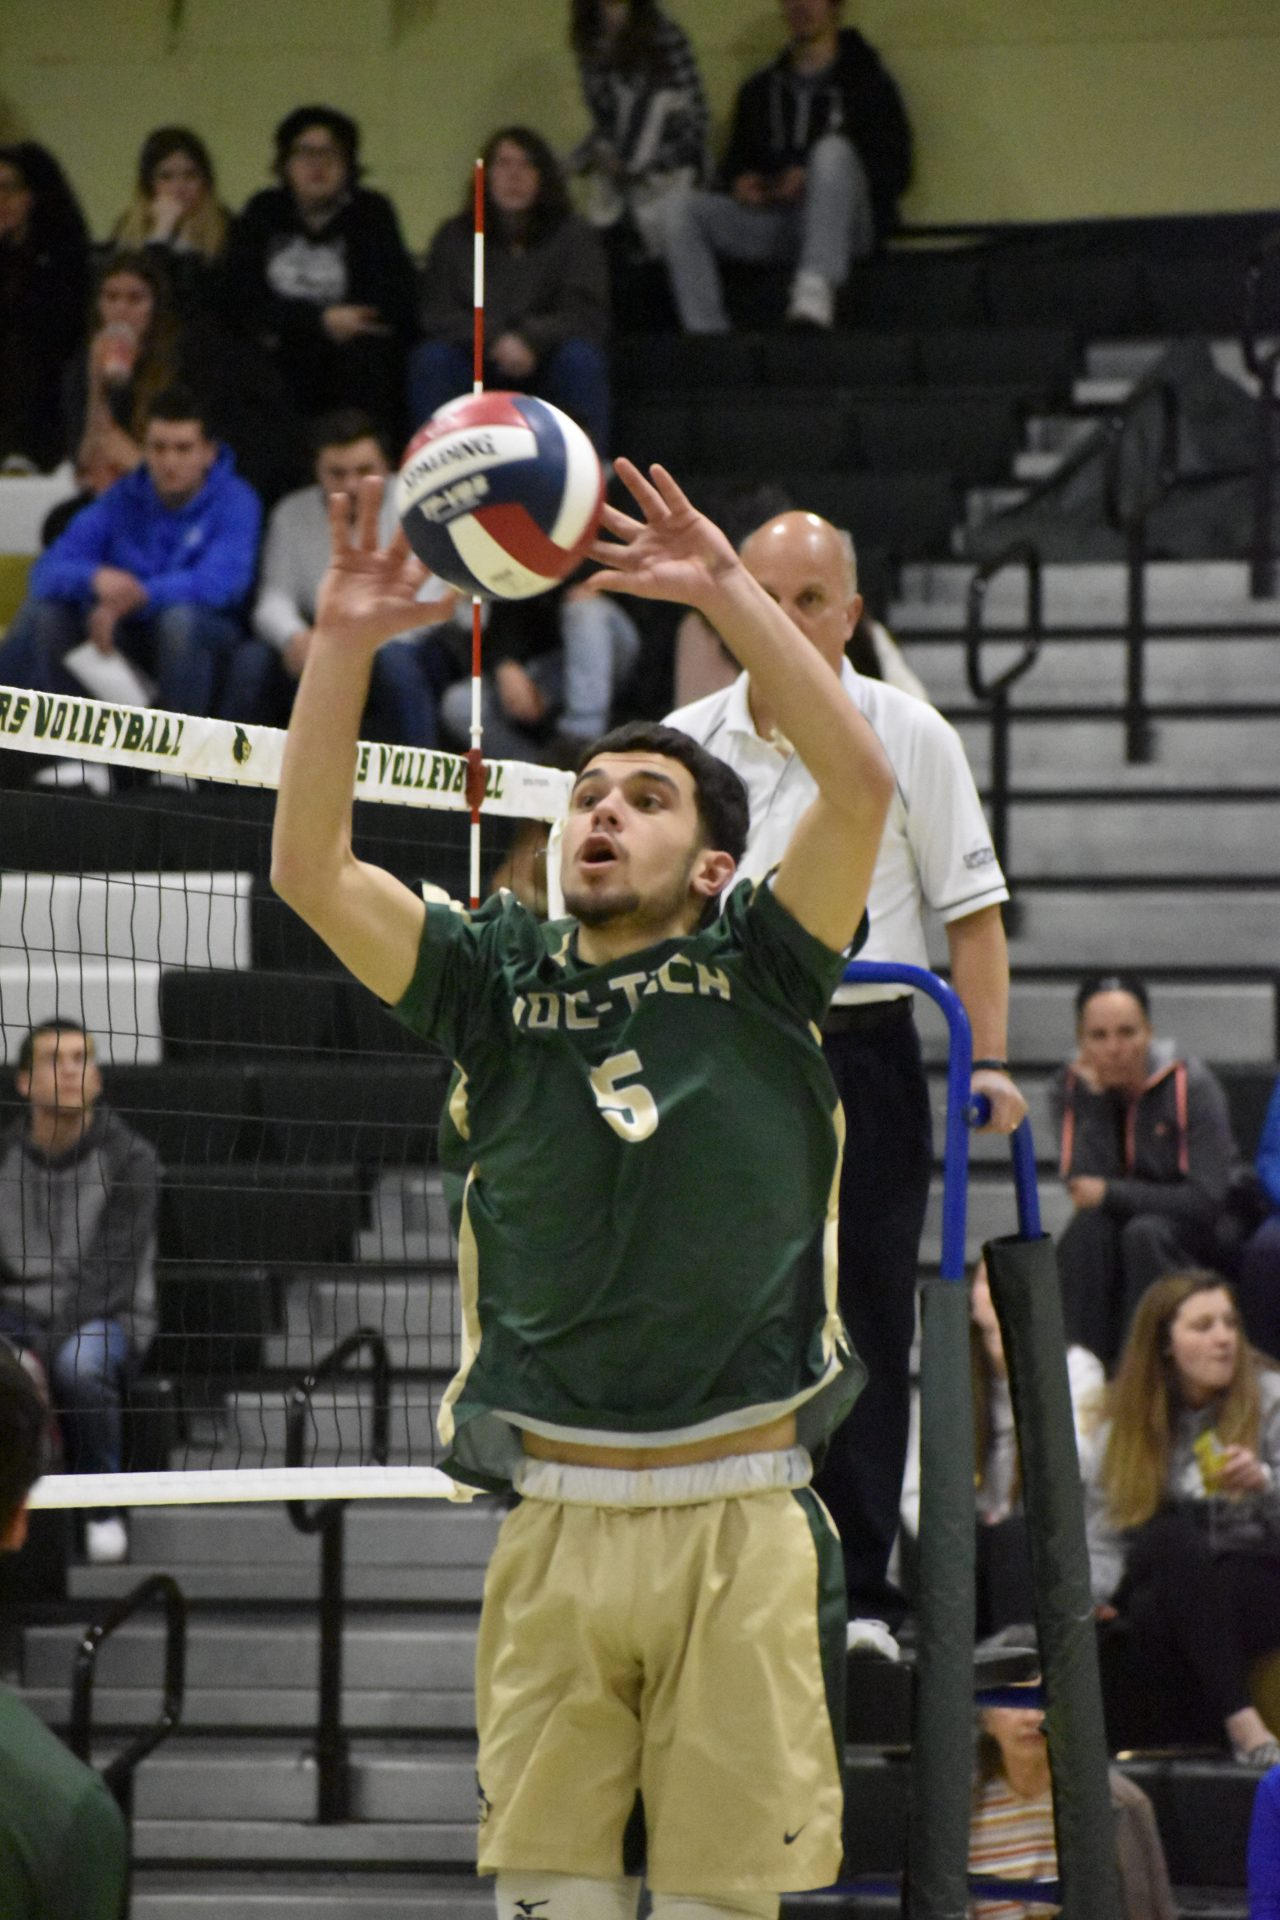 Ryan R Assist during vollyball